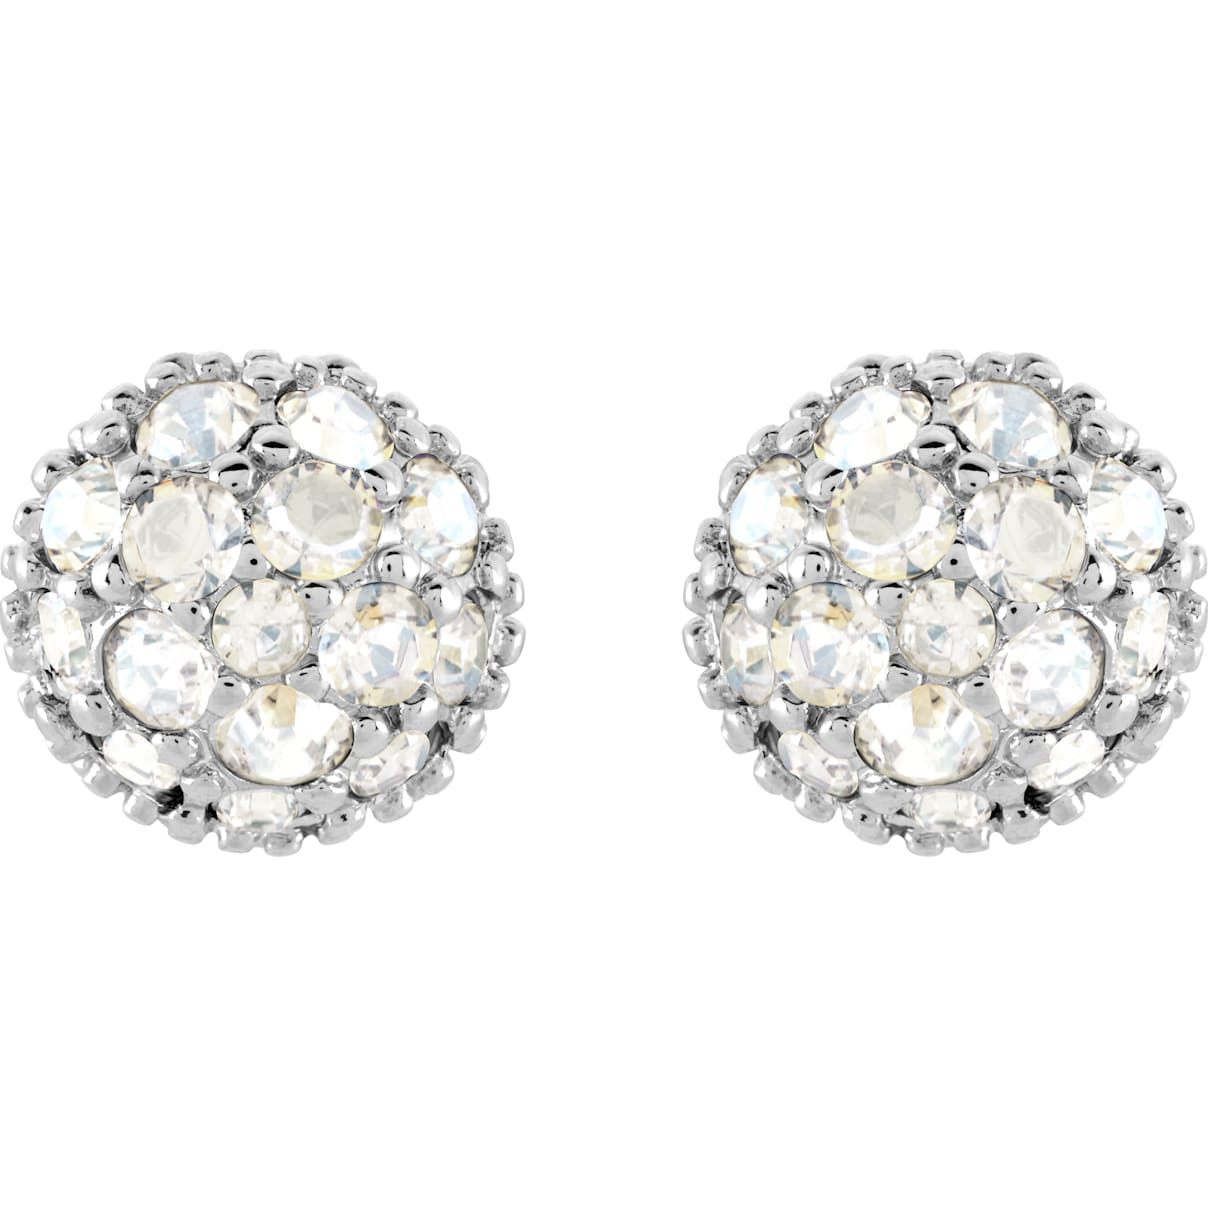 Swarovski Euphoria Pierced Earrings, White, Rhodium plated